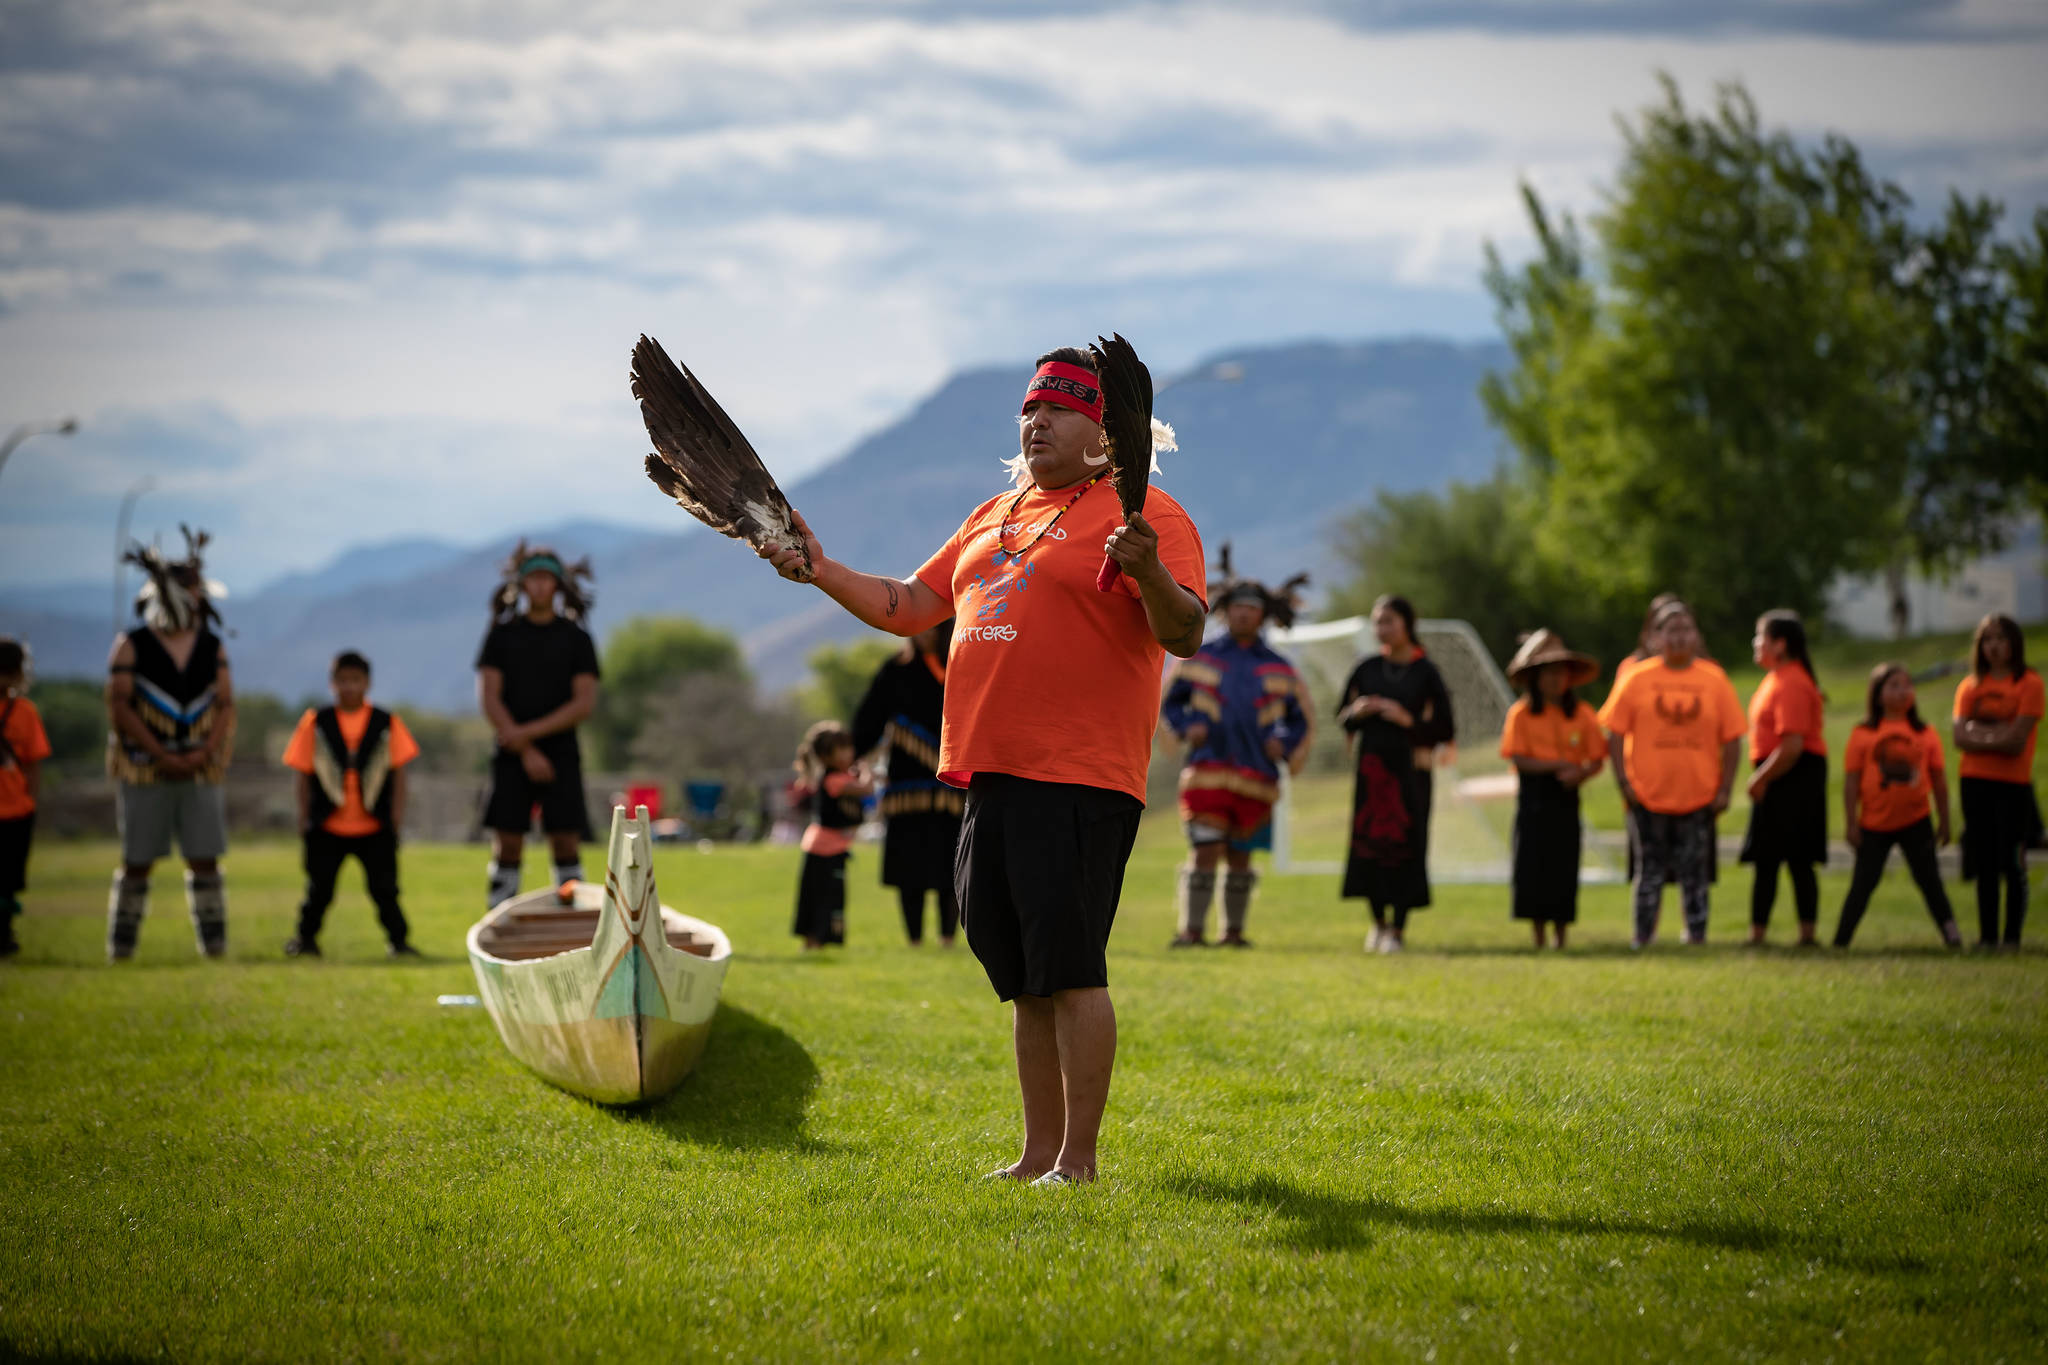 Jonny Williams (Xotxwes), of the Sto:lo Nation, holds eagle feathers as he helps guide his late ancestors from an unmarked, undocumented burial site to a canoe so they can travel home, outside the former Kamloops Indian Residential School, in Kamloops, B.C., on Monday, May 31, 2021. The remains of 215 children have been discovered buried near the former school. THE CANADIAN PRESS/Darryl Dyck